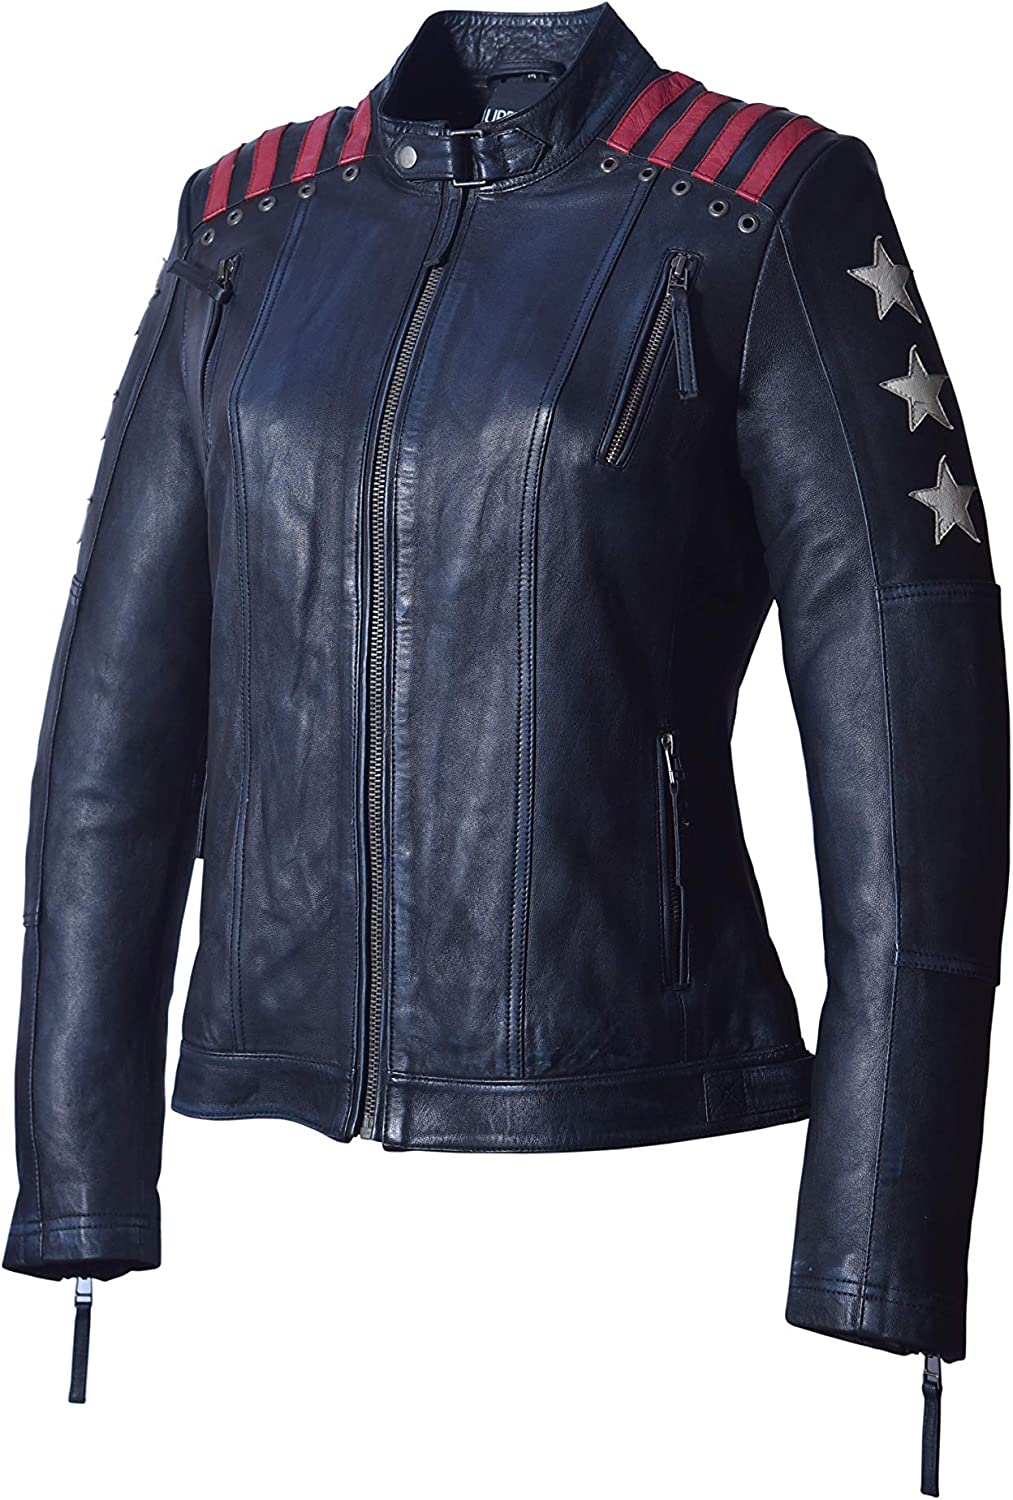 Urban Leather Rising Star pour Femme Bleues Marines